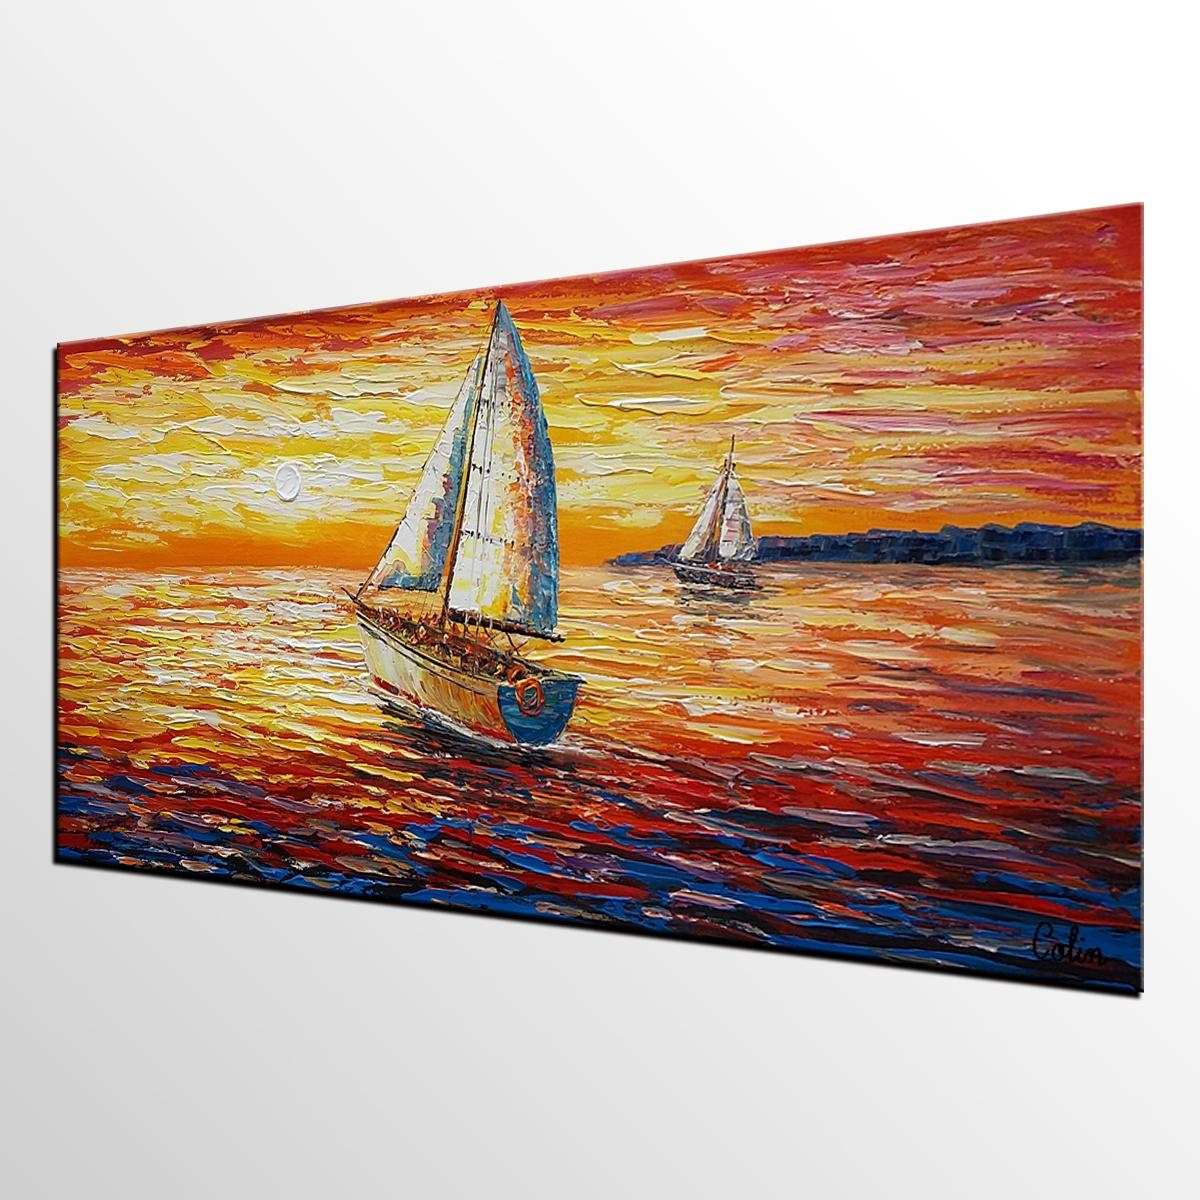 Original Wall Art, Sail Boat Painting, Seascape Painting, Abstract Intended For Boat Wall Art (View 8 of 20)